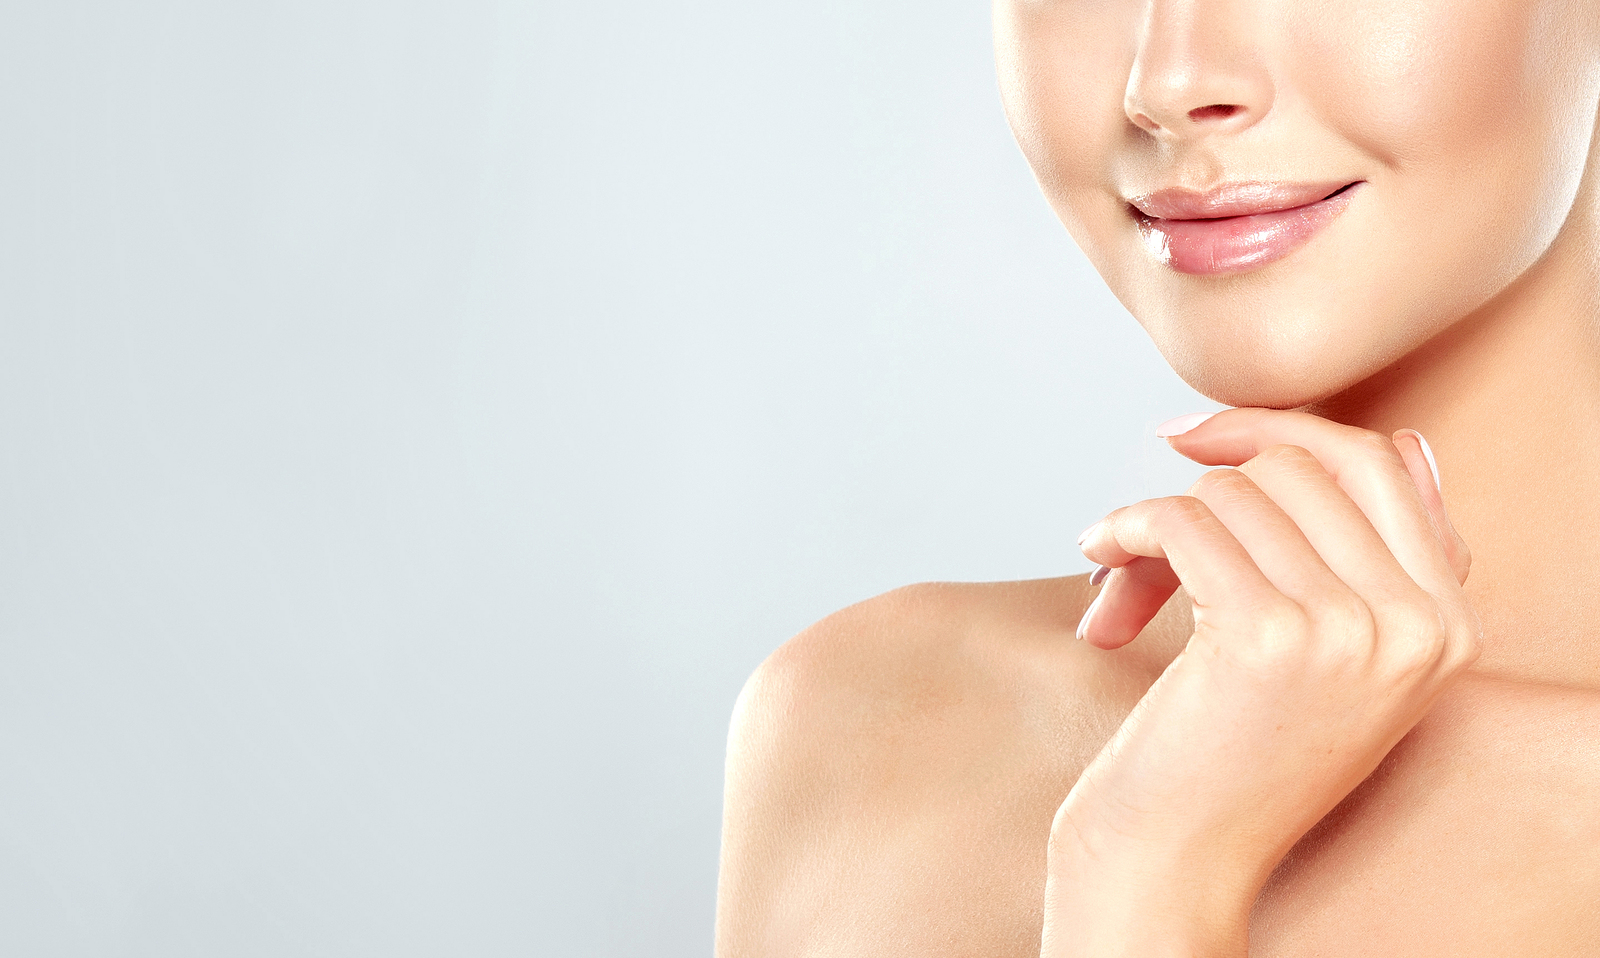 Why Skin Polishing is an Ideal Oily Skin Treatment